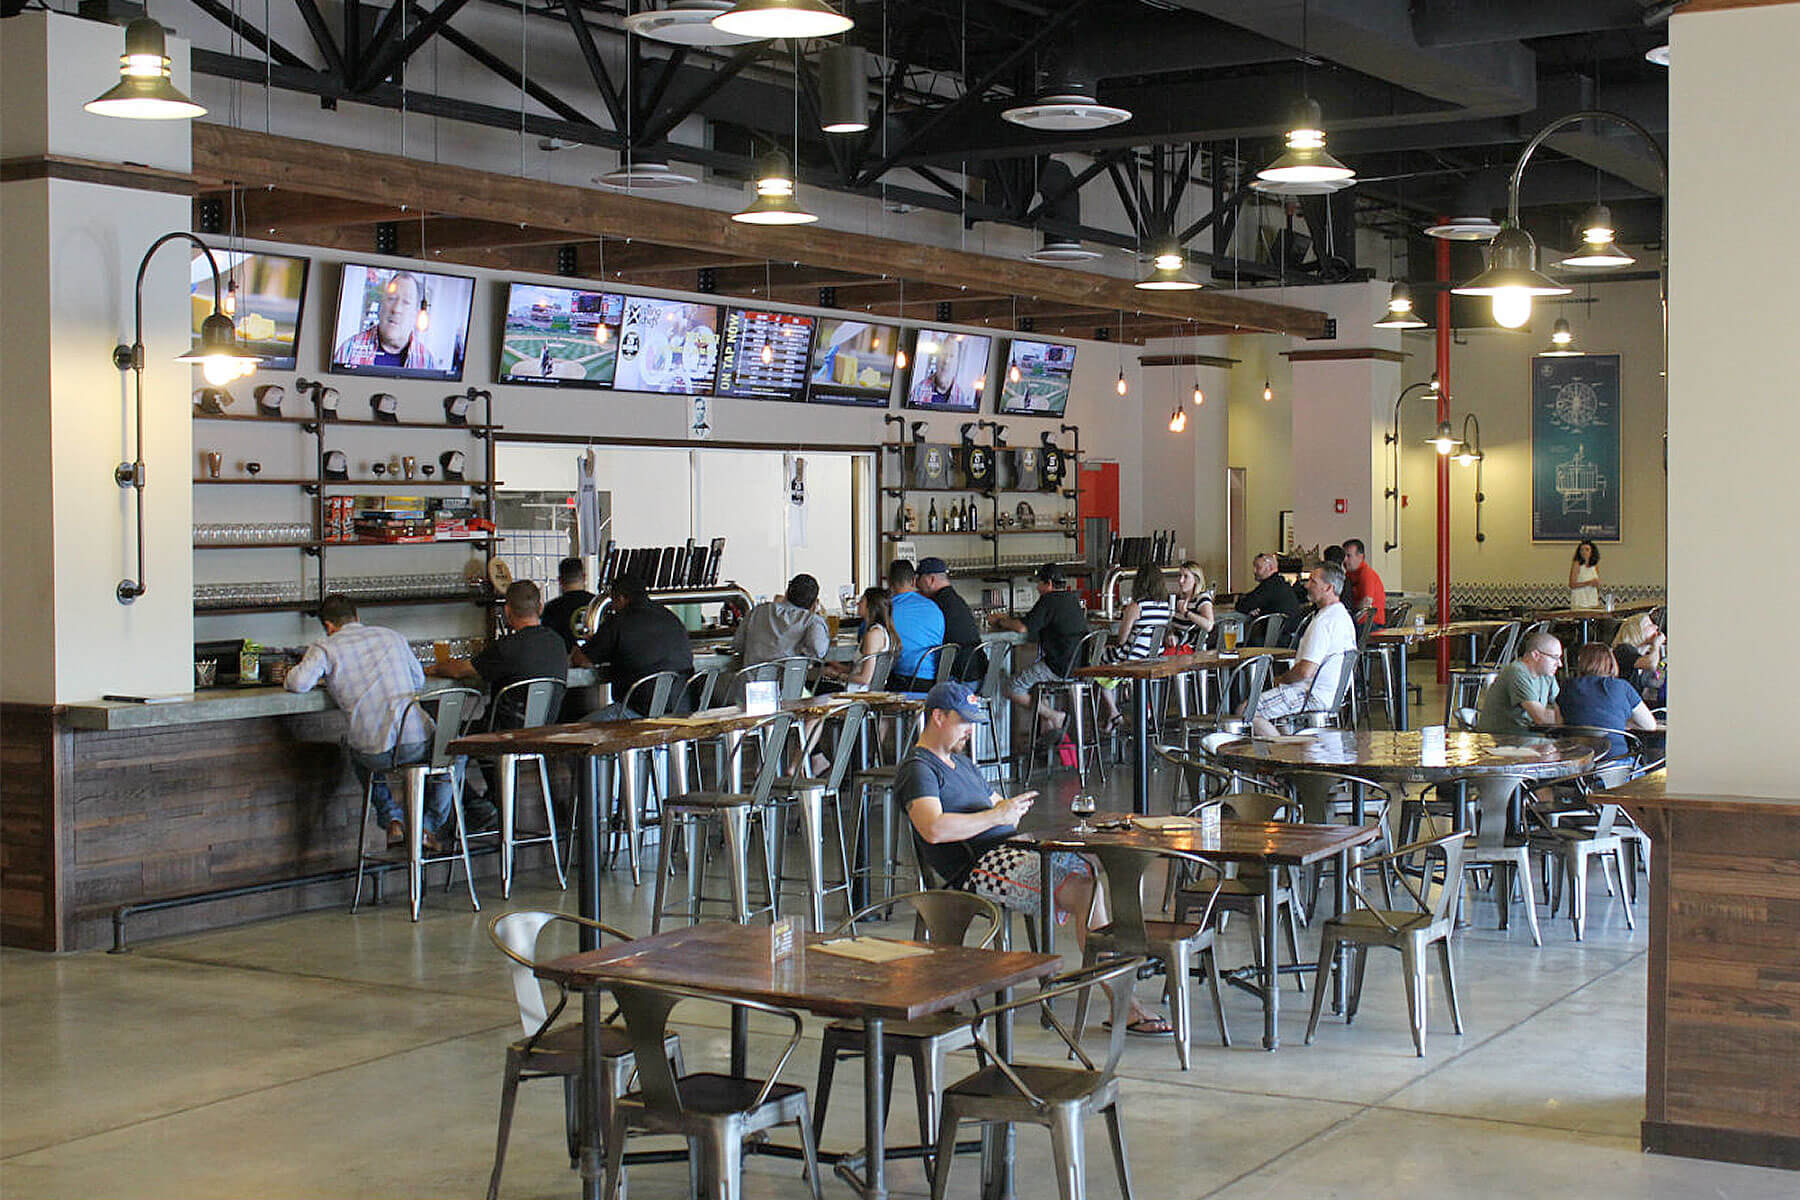 Inside the taproom at 26 Degrees Brewing Co. in Pompano Beach, Florida